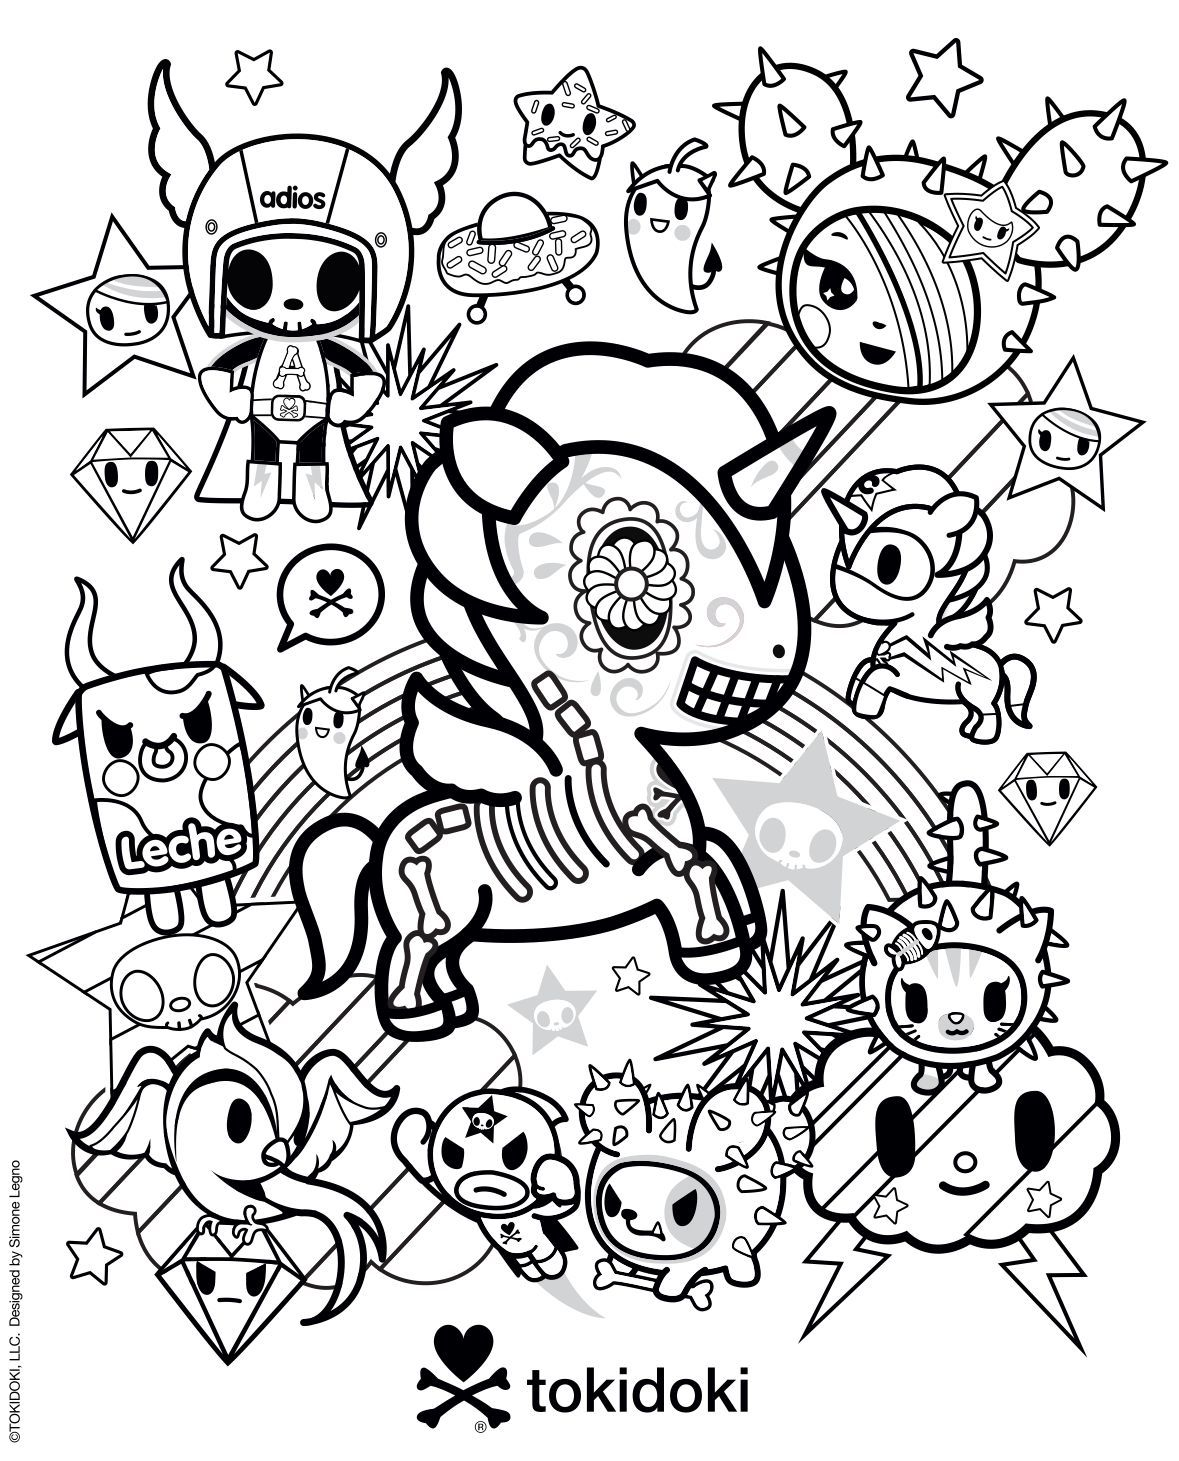 - Pin By Hayley Bates On Coloring Pages Coloring Pages, Kitty Coloring